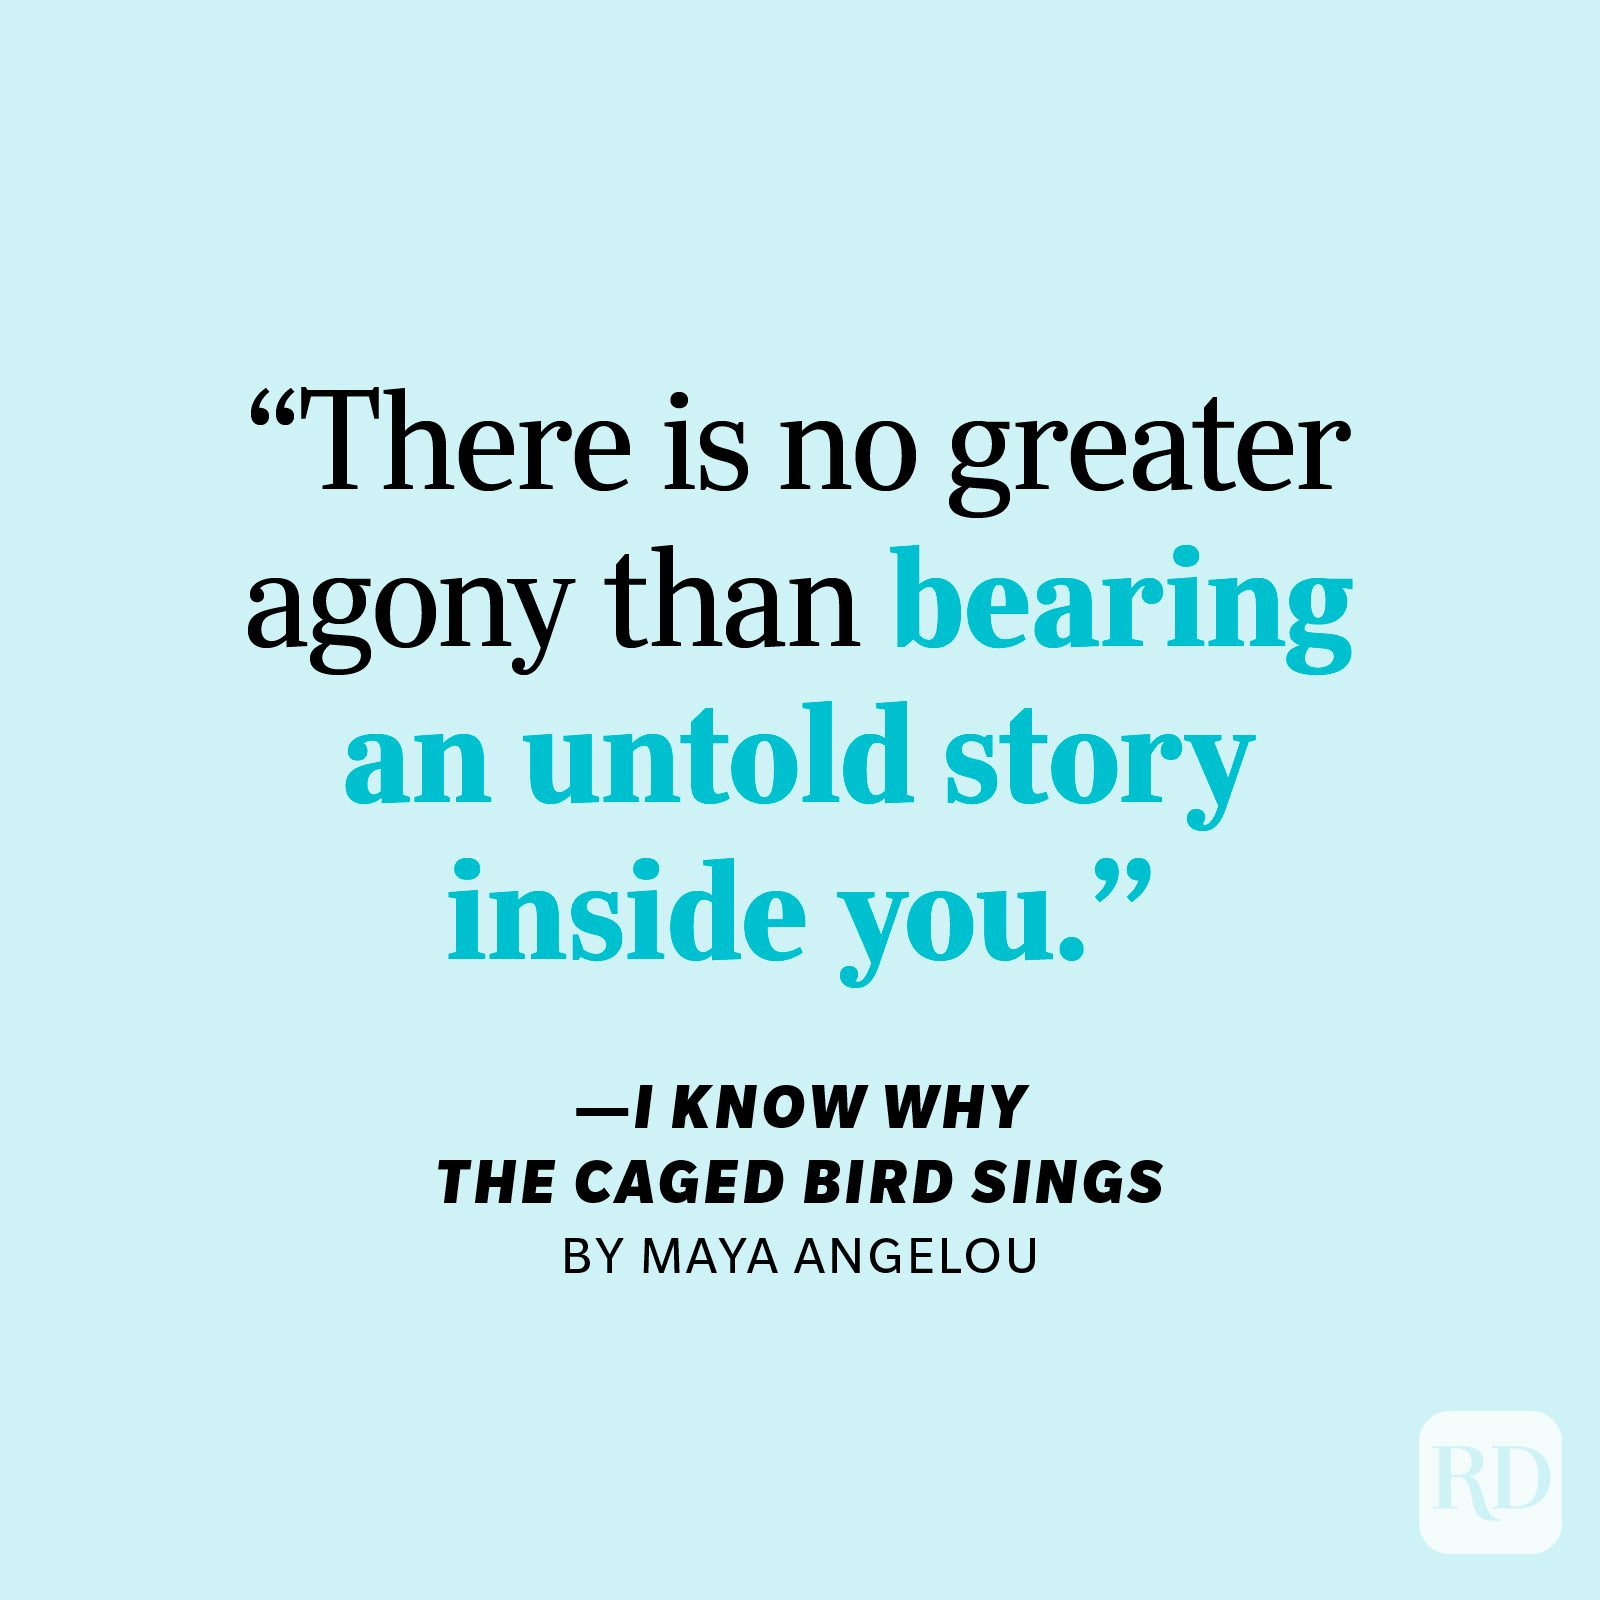 """I Know Why the Caged Bird Sings by Maya Angelou """"There is no greater agony than bearing an untold story inside you."""""""